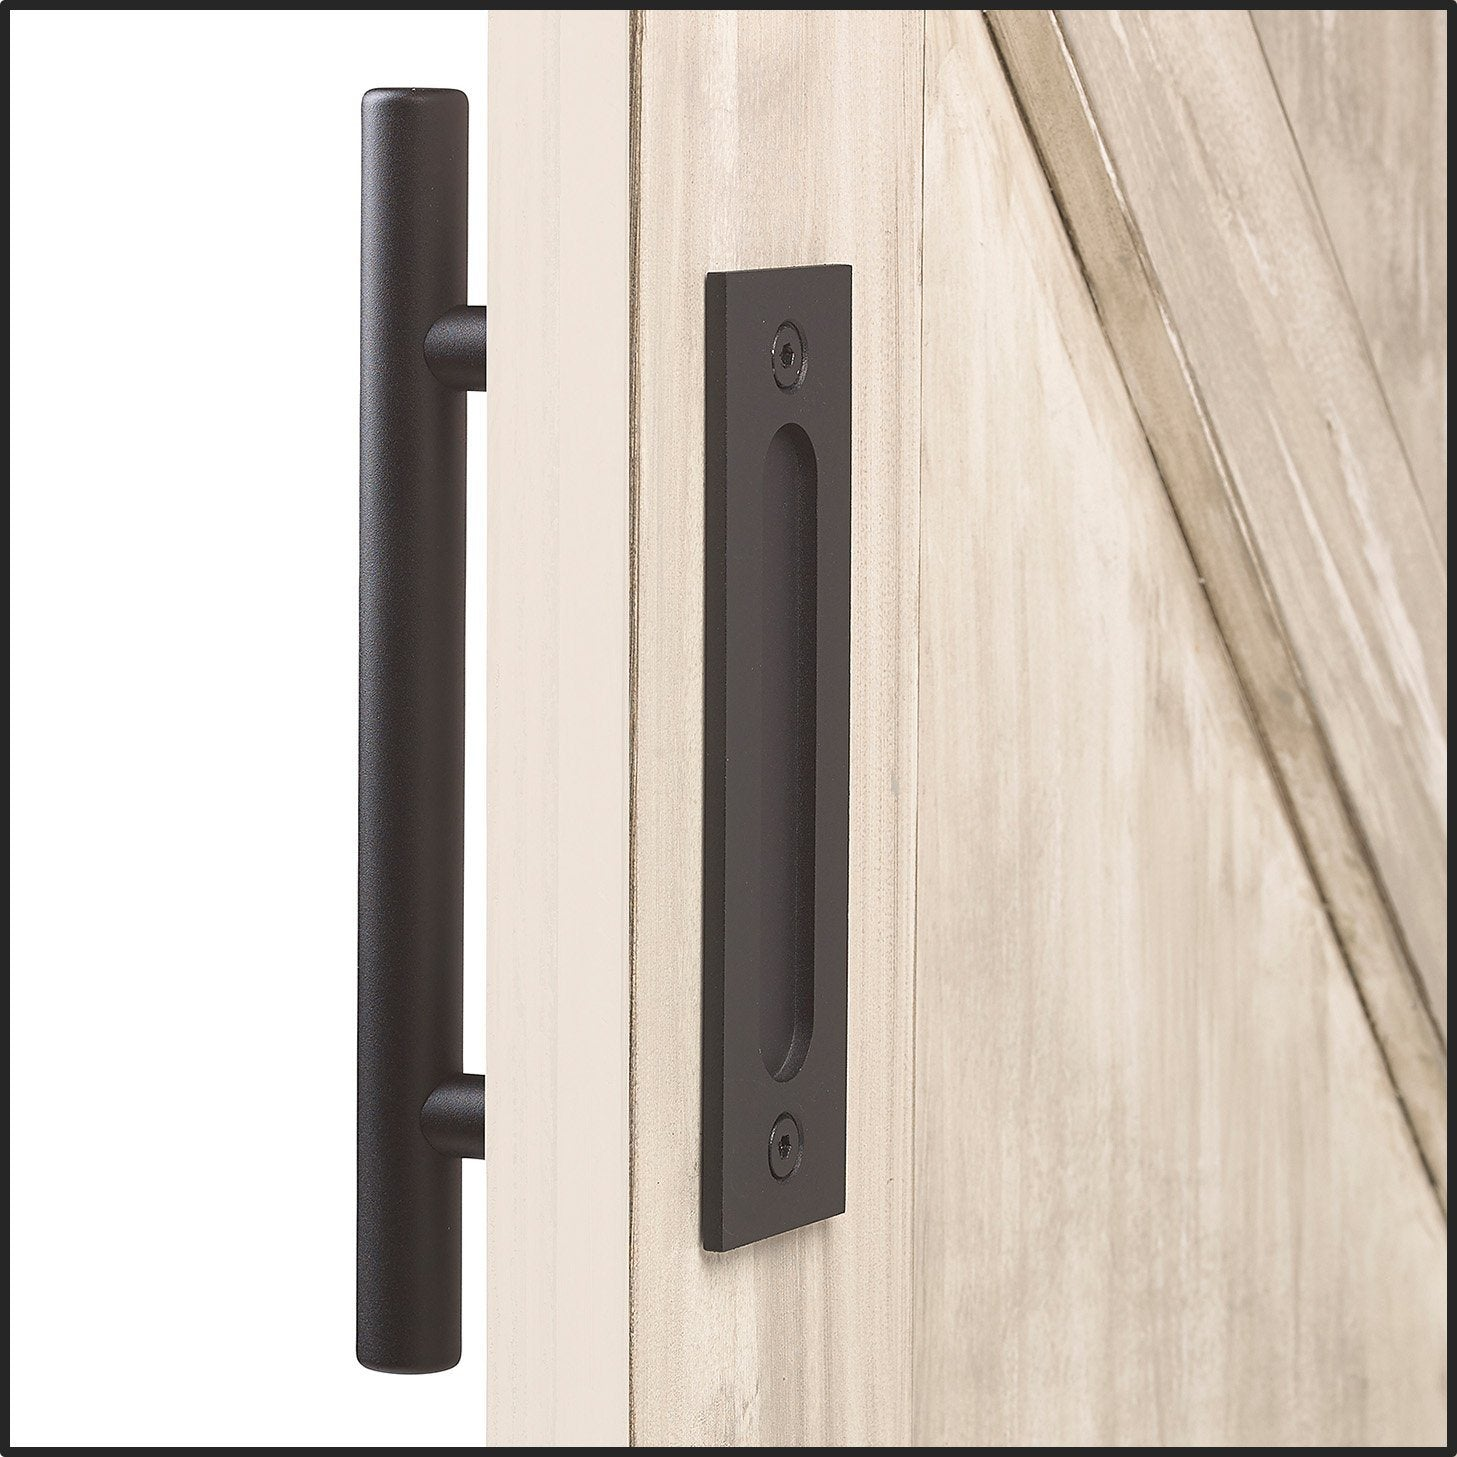 Sliding barn door handle pull with latch | MJC & Company